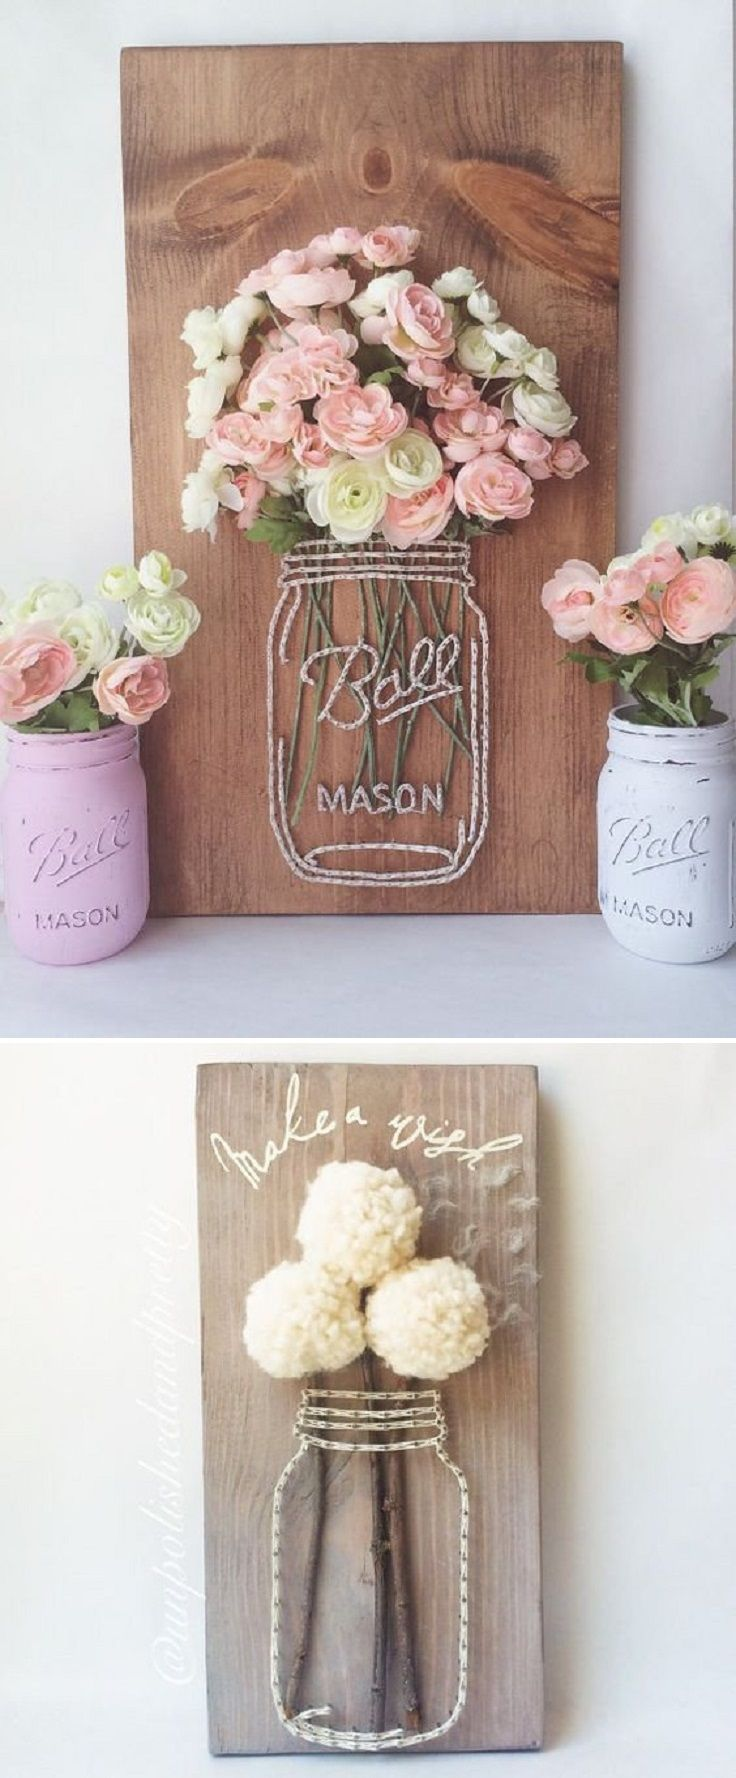 Craft a Mason Jar String Art with Wood, Yarn and Faux Flowers - 16 Picture Perfect Spring Decorations to Celebrate the Blissful Season